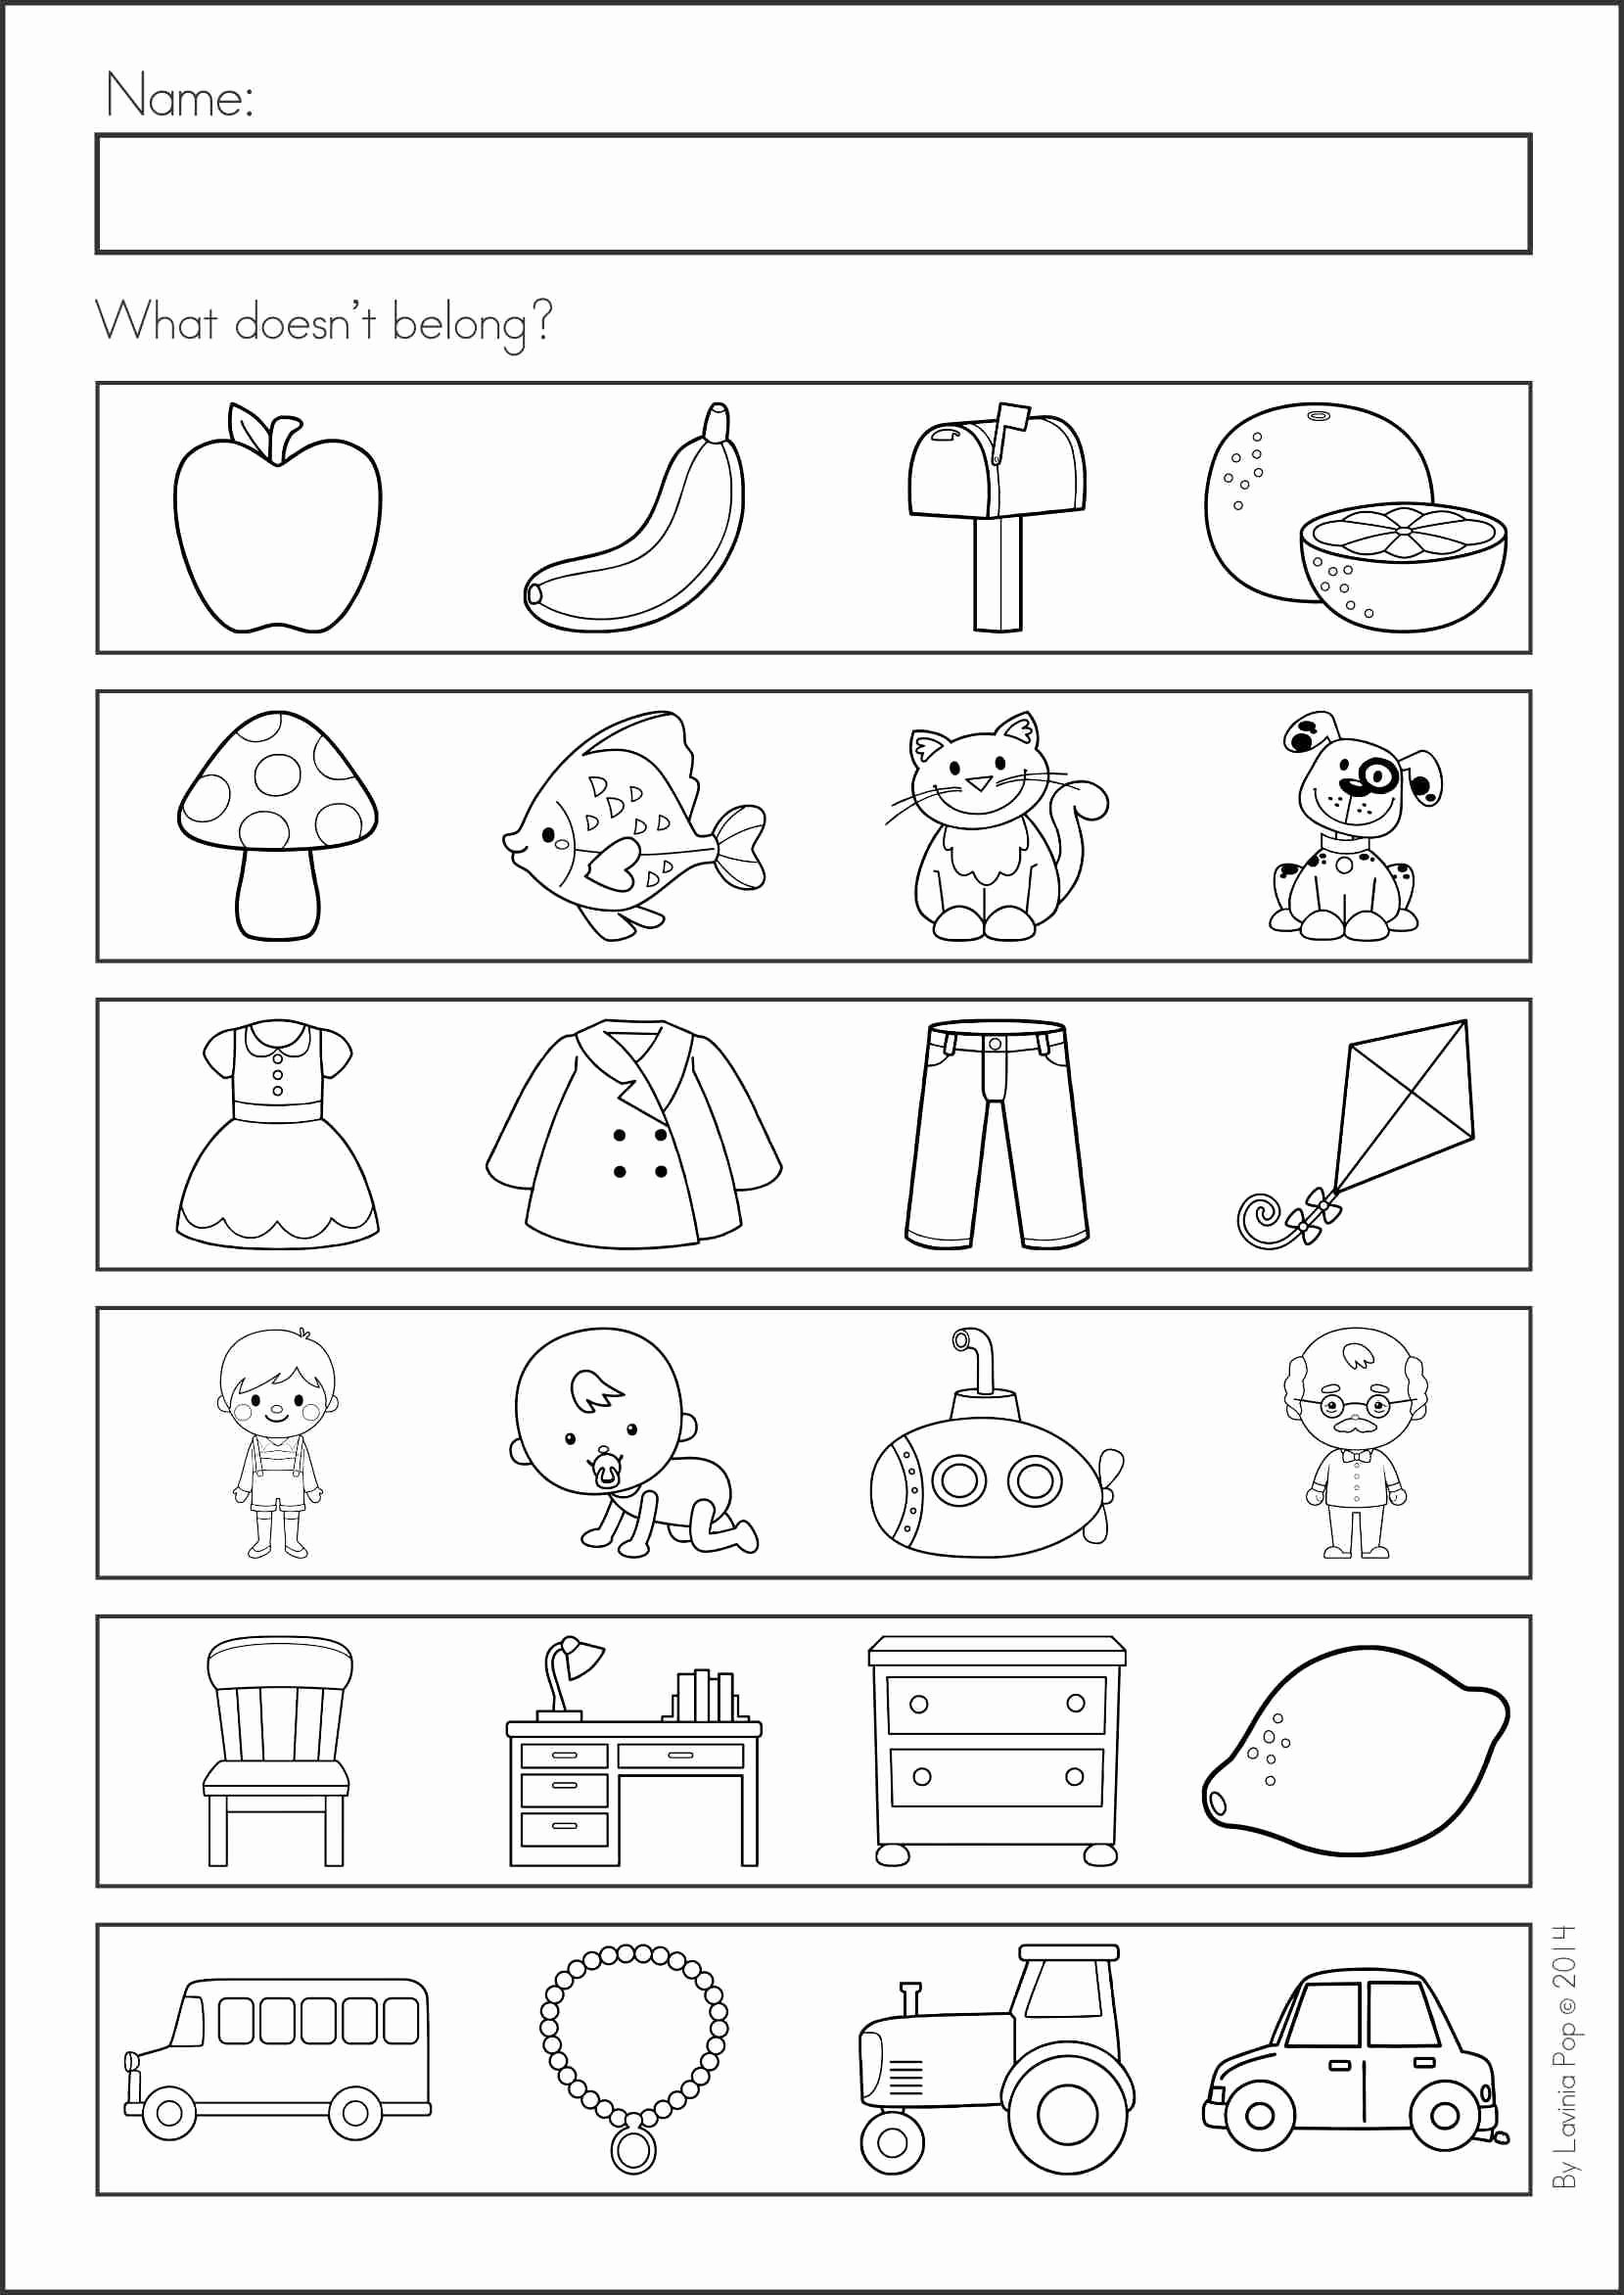 Number Matching Worksheets for Preschoolers Fresh Worksheet Matching Worksheets Printable Background Music